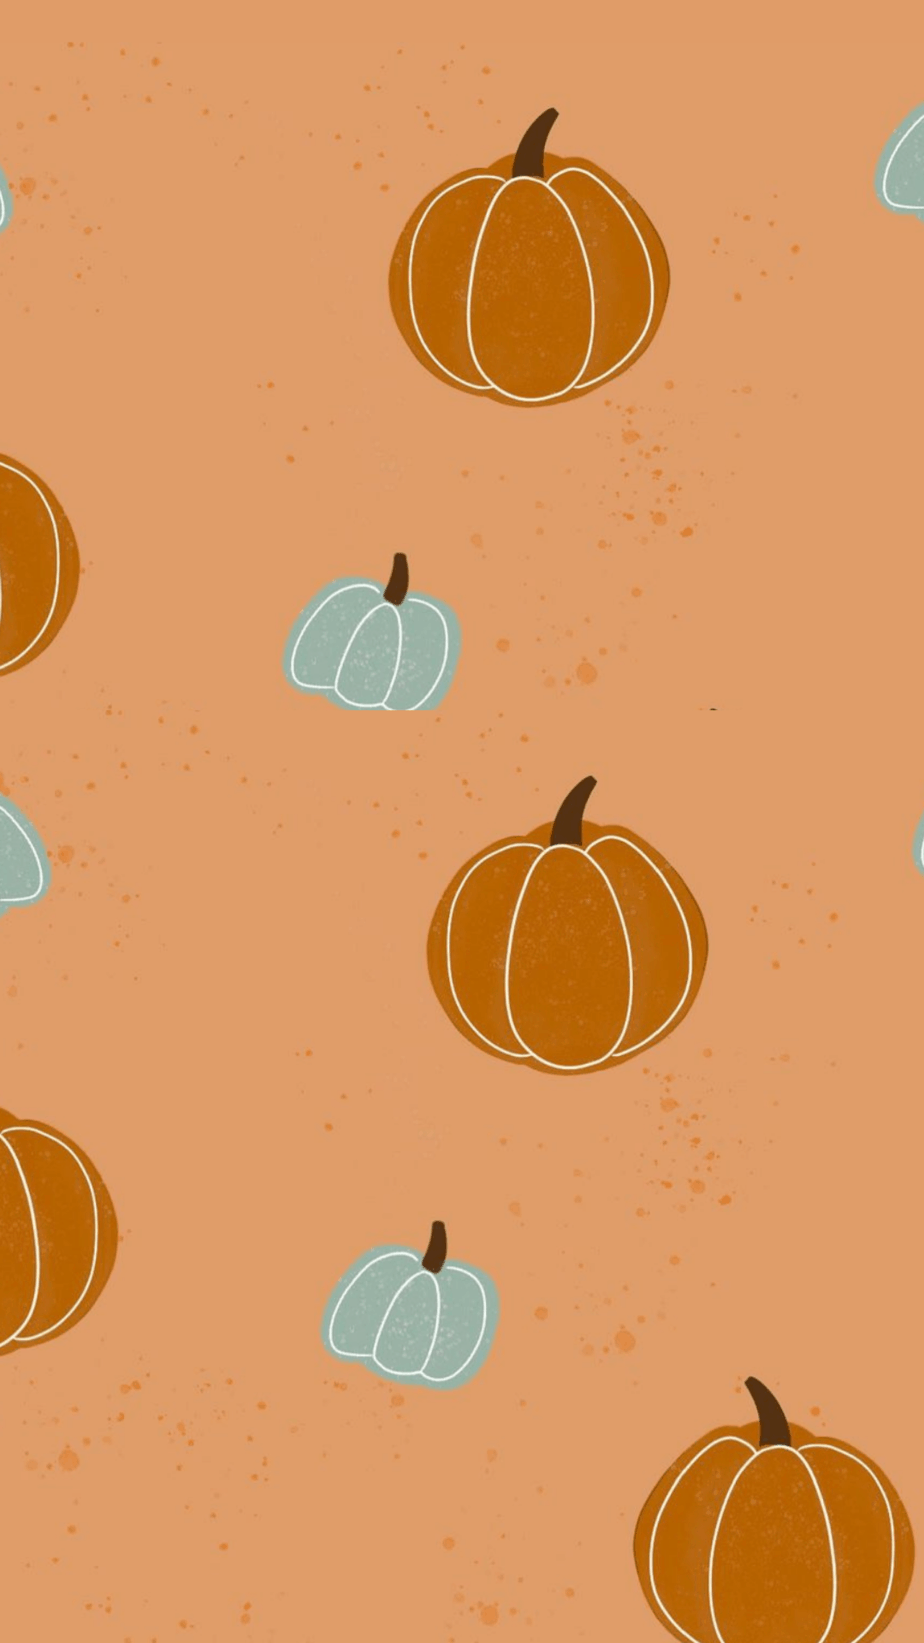 Ash Pumpkin Wallpaper. You can always make your iPhone look aesthetic with cute wallpapers, these 40 beautiful and aesthetic autumn fall wallpapers for your iPhone will make you feel that autumnal fall vibes.